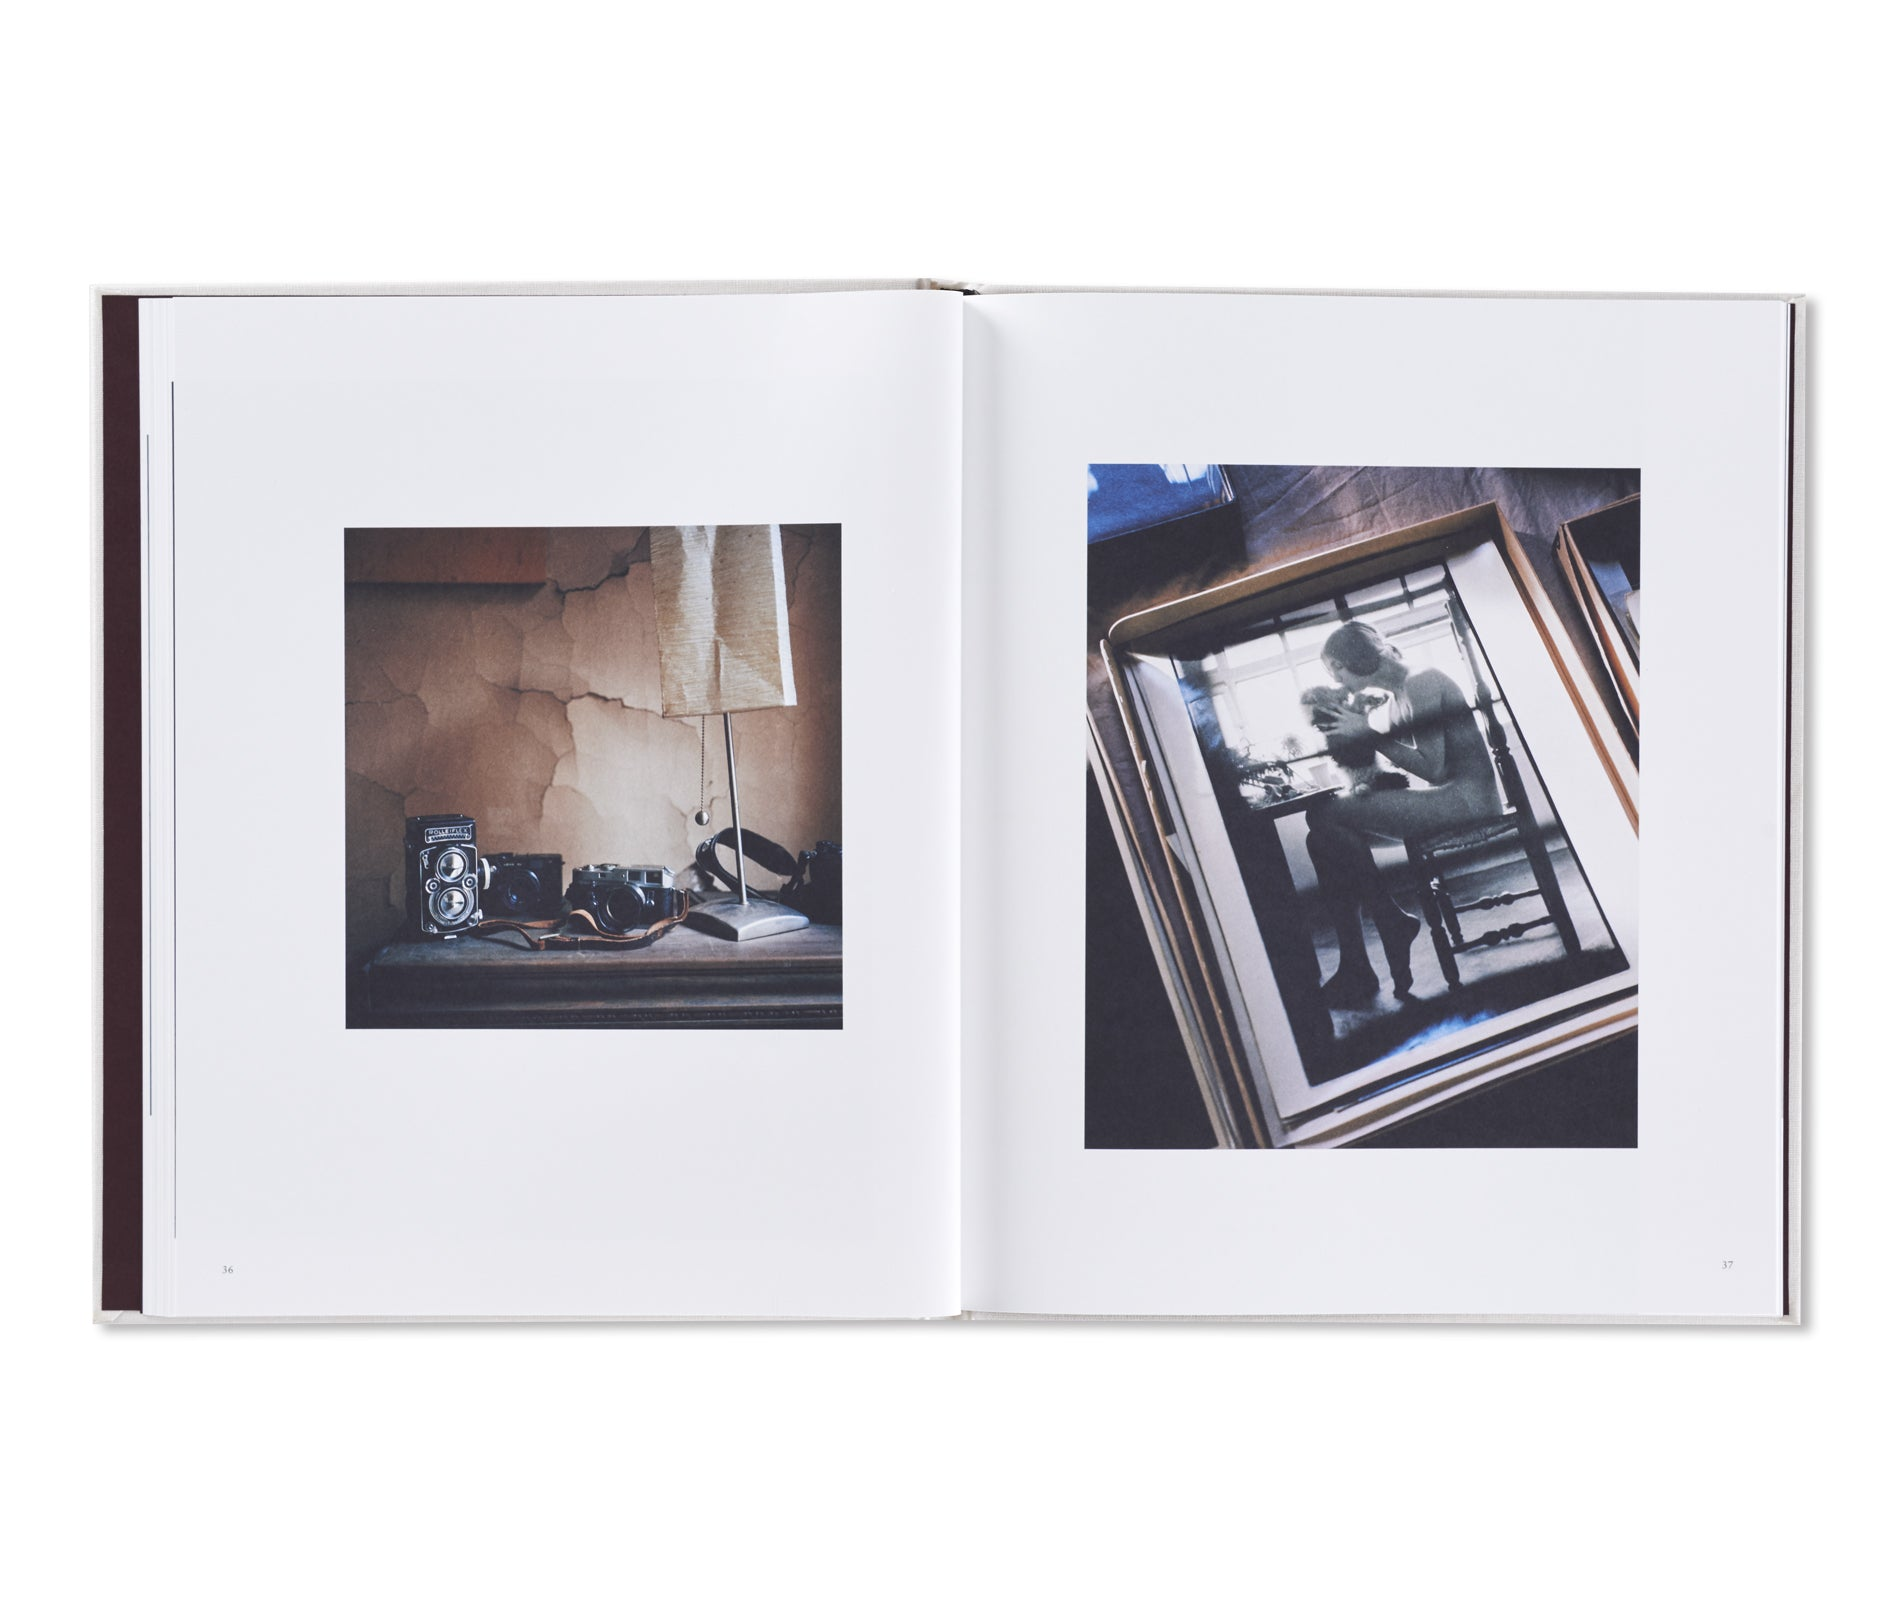 SAUL LEITER by François Halard [JAPANESE SPECIAL EDITION #2]